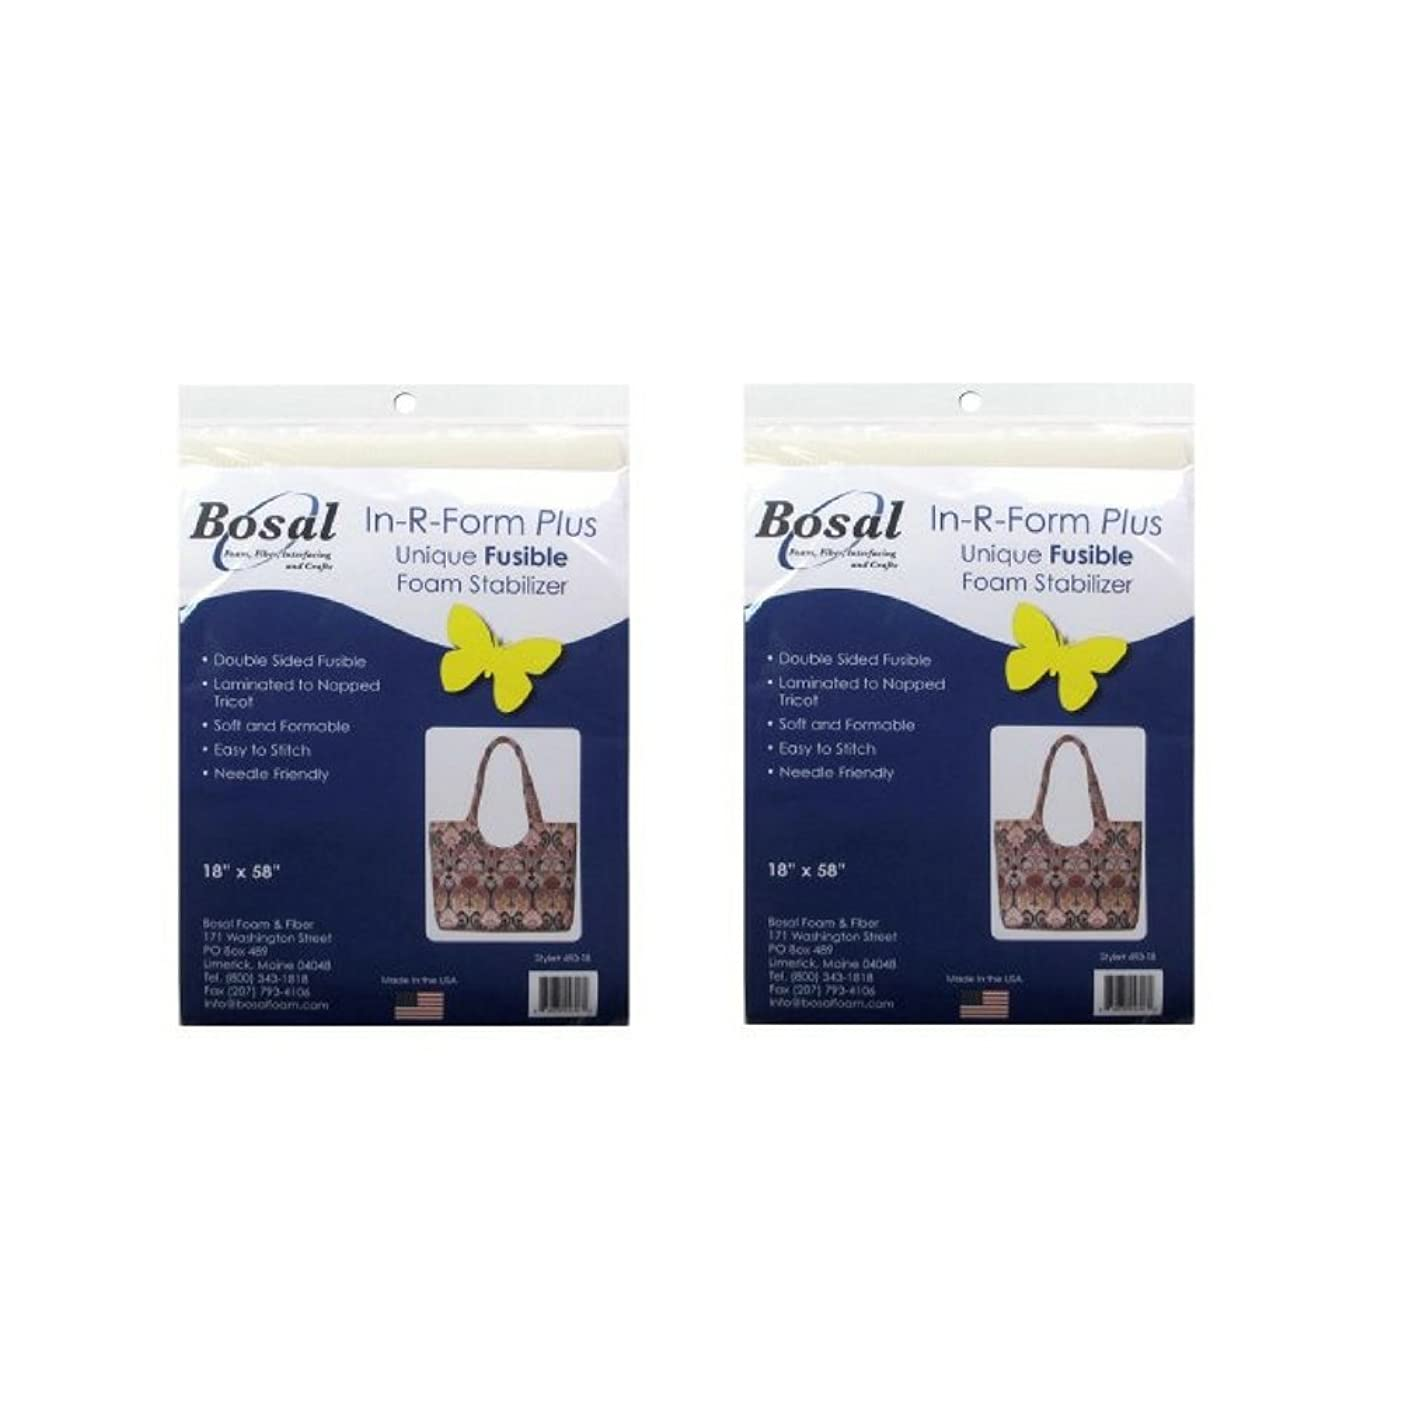 Bosal 493-18 In-R-Form Double Sided Fusible Foam Stabilizer, 18x58-Inch (2 Pack)